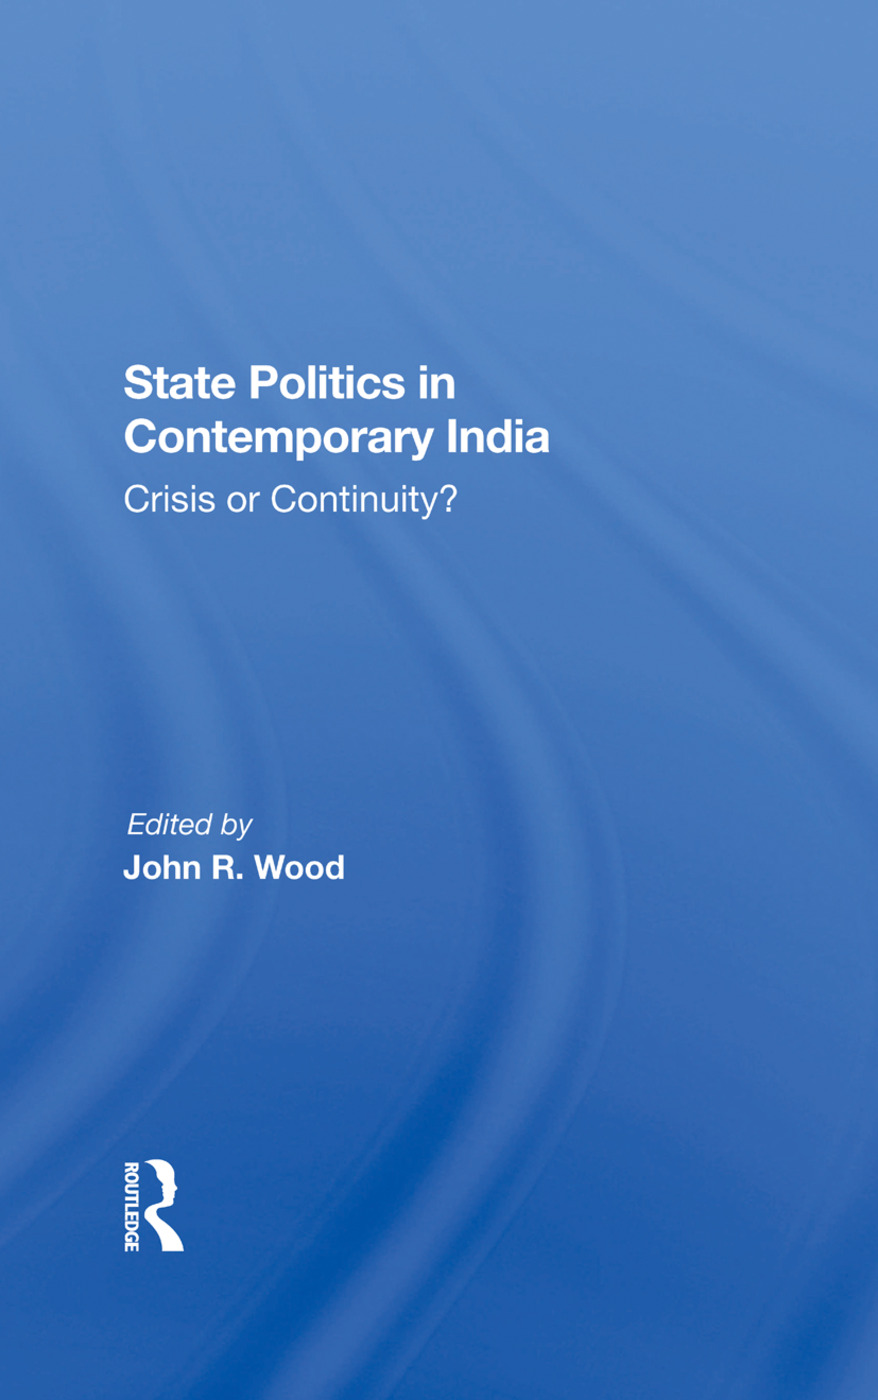 State Politics In Contemporary India: Crisis Or Continuity? book cover